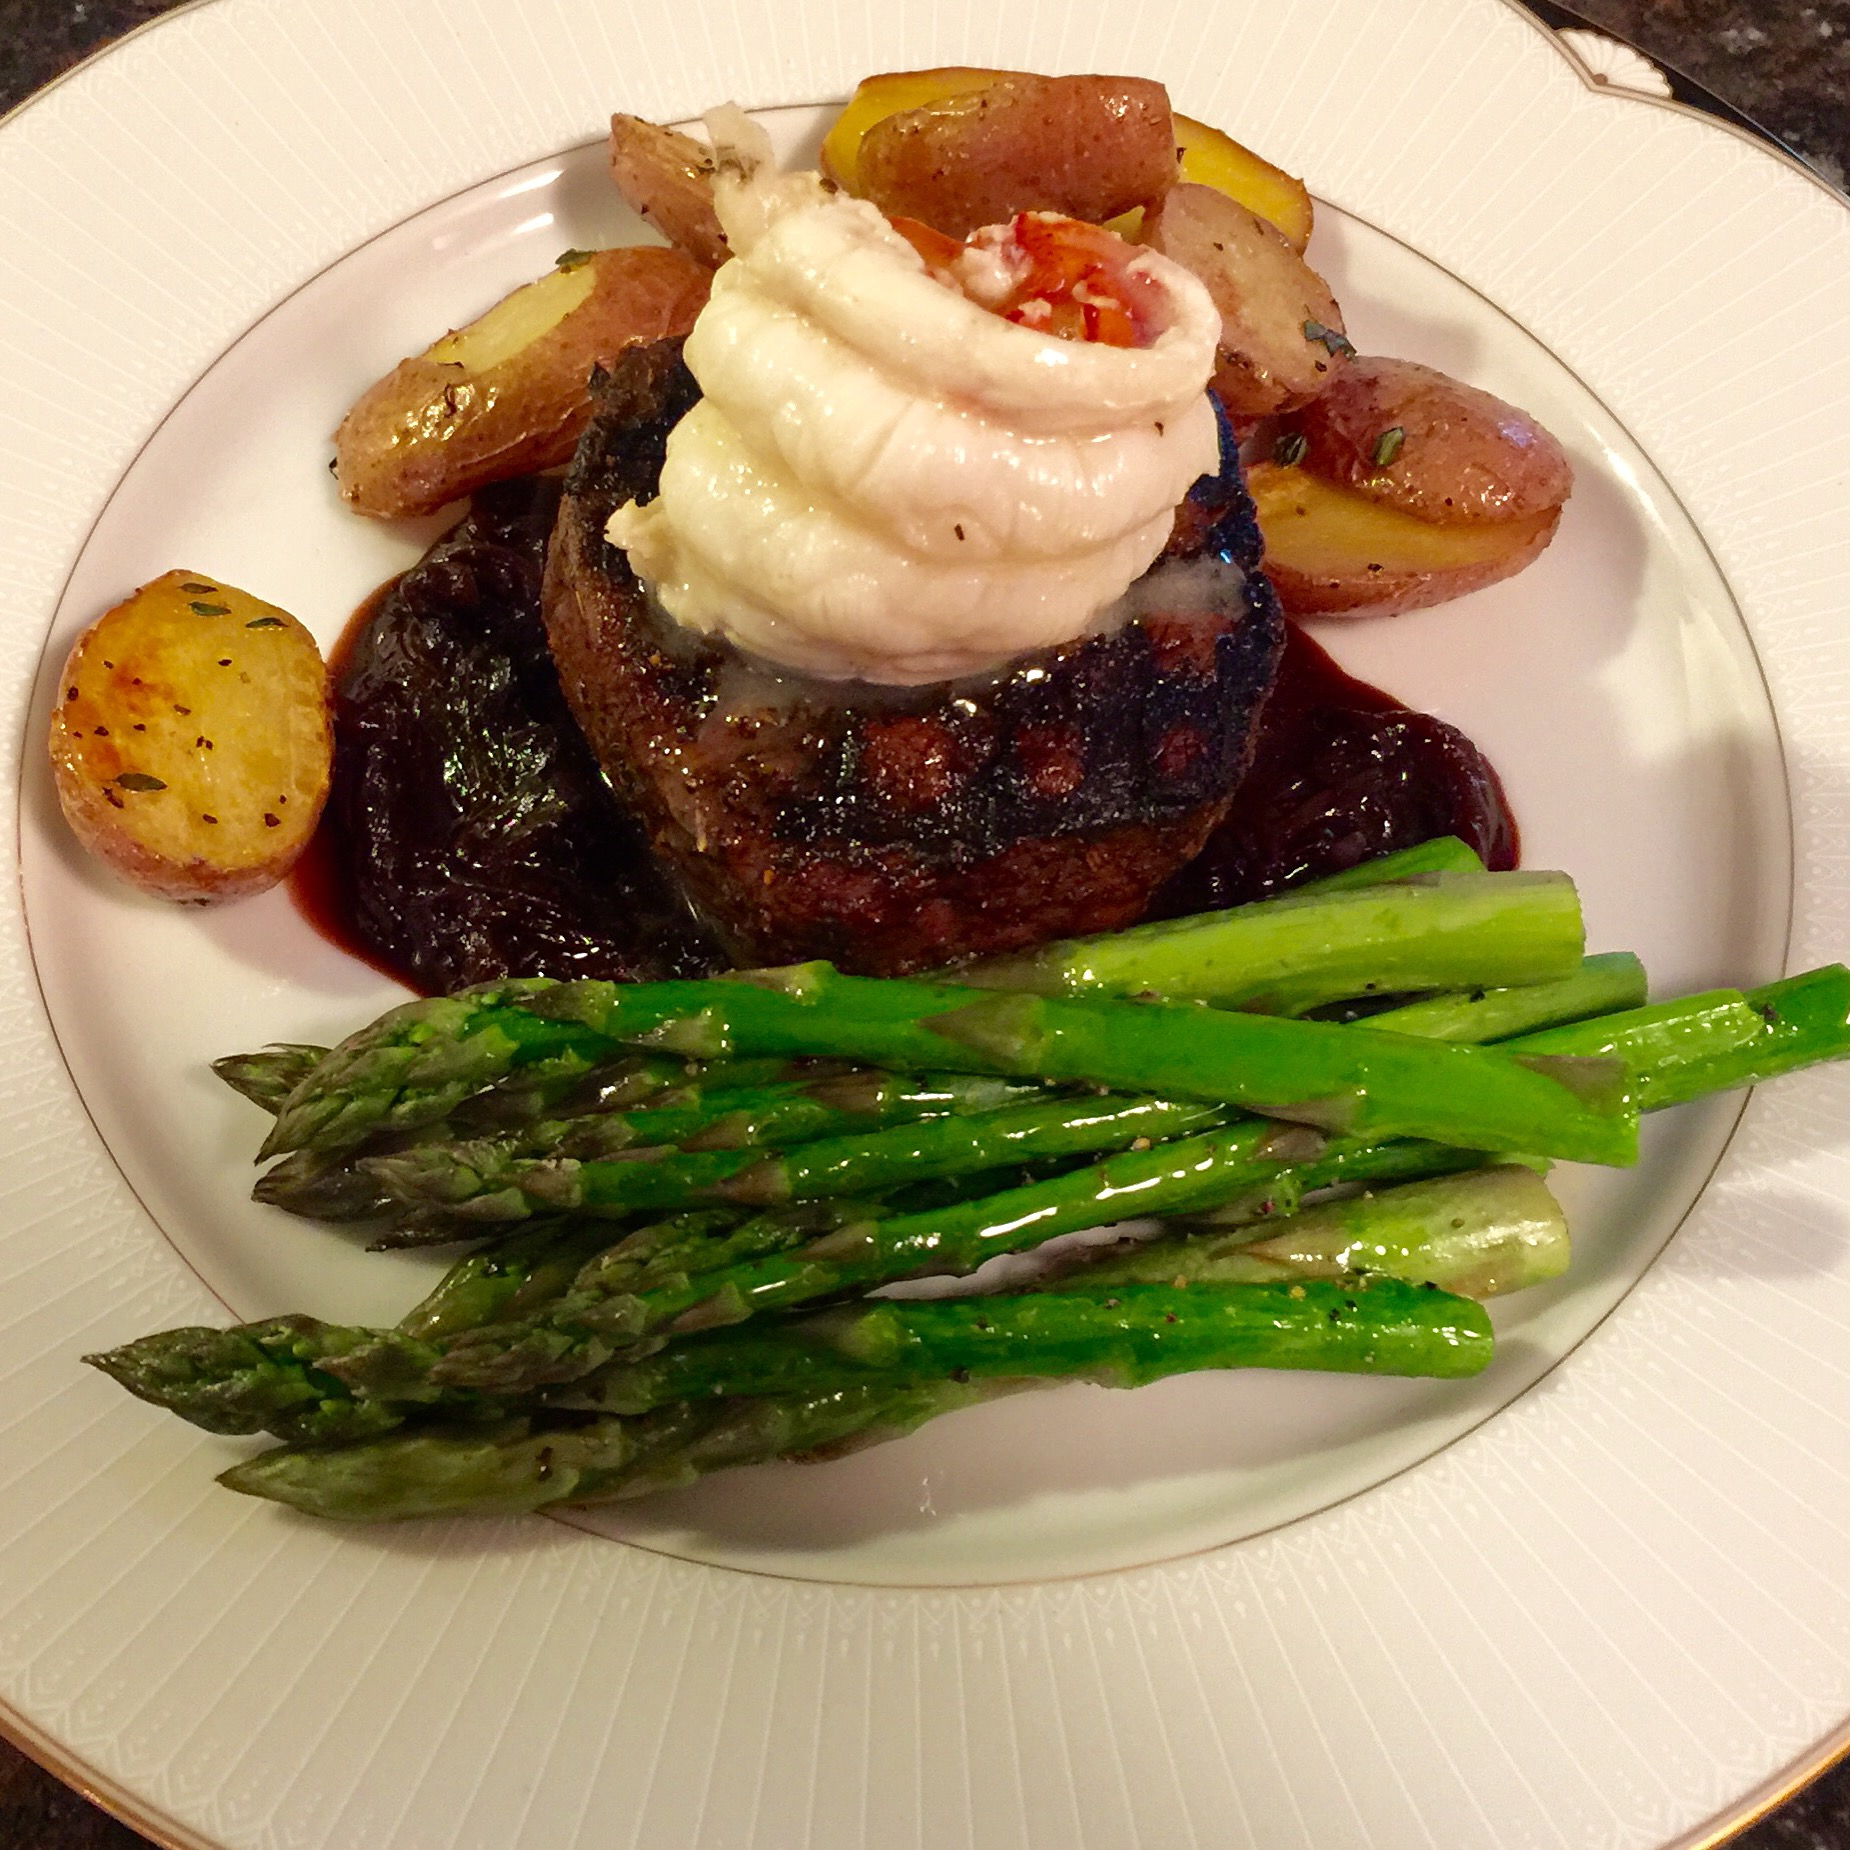 Grilled Tenderloin with Lobster Tail, Roasted New Potatoes and Asparagus